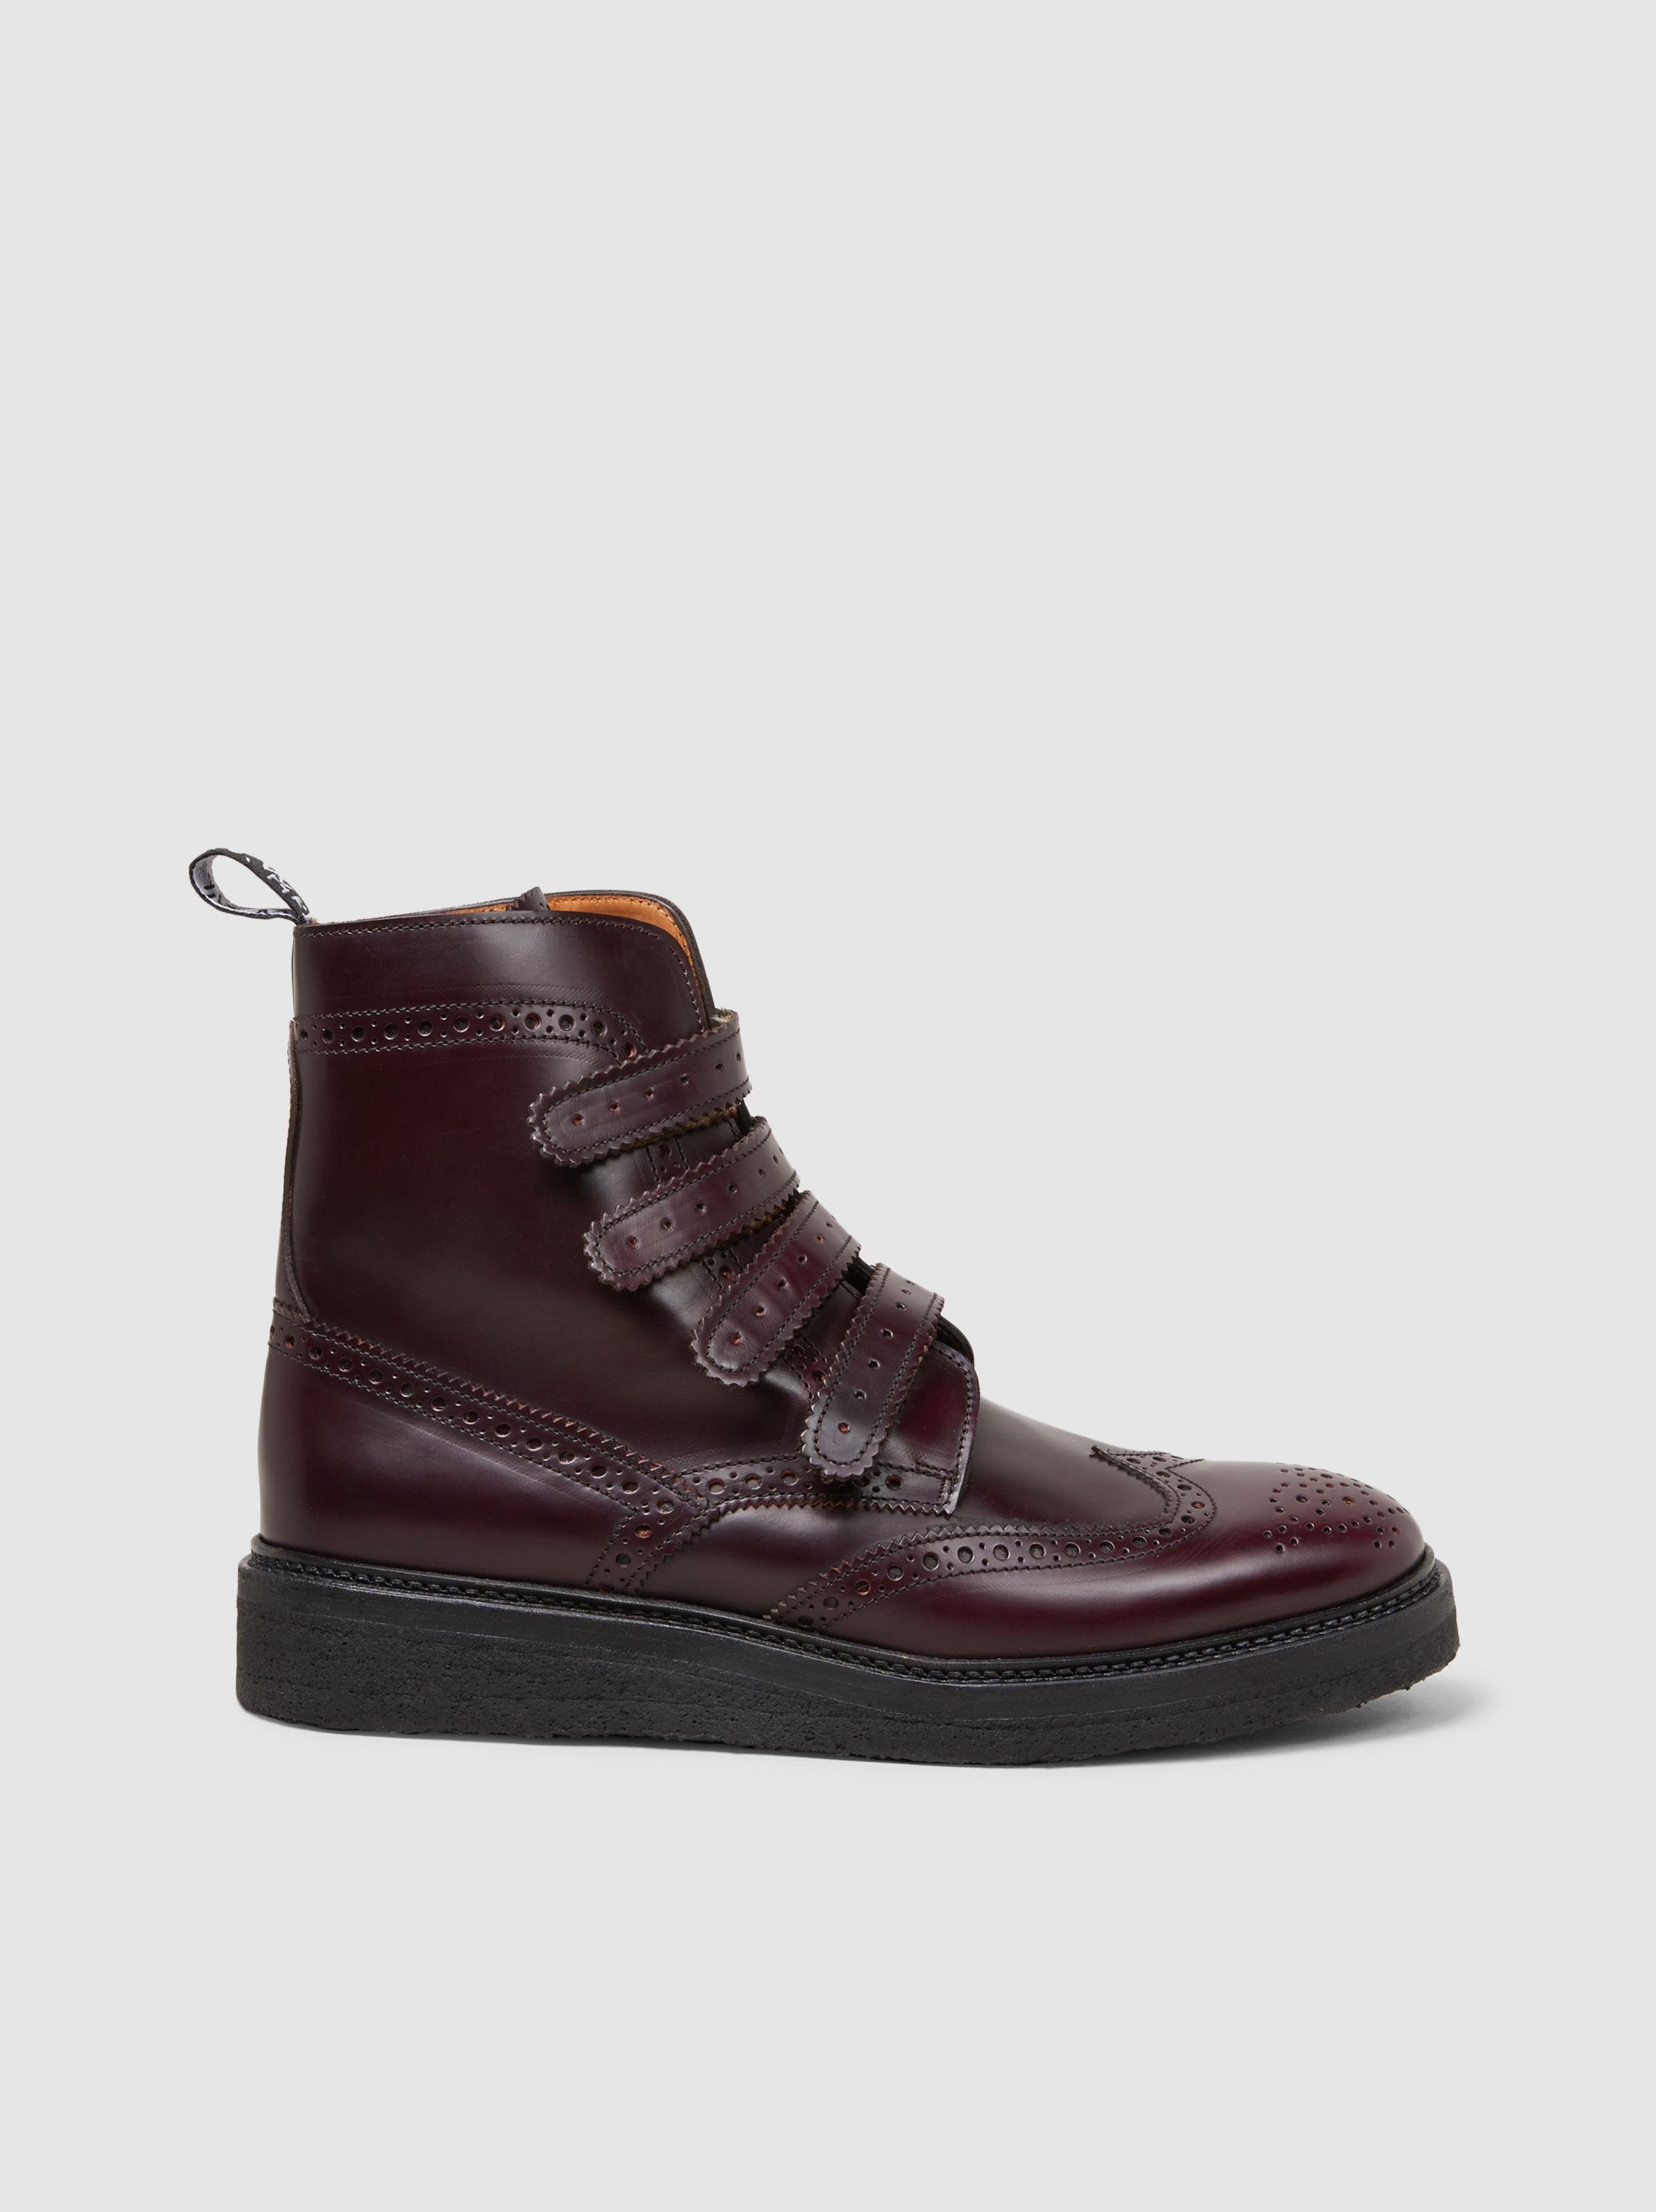 Rag & Bone Wessex Wingtip Booties popular sale online free shipping from china Q9Bh80g